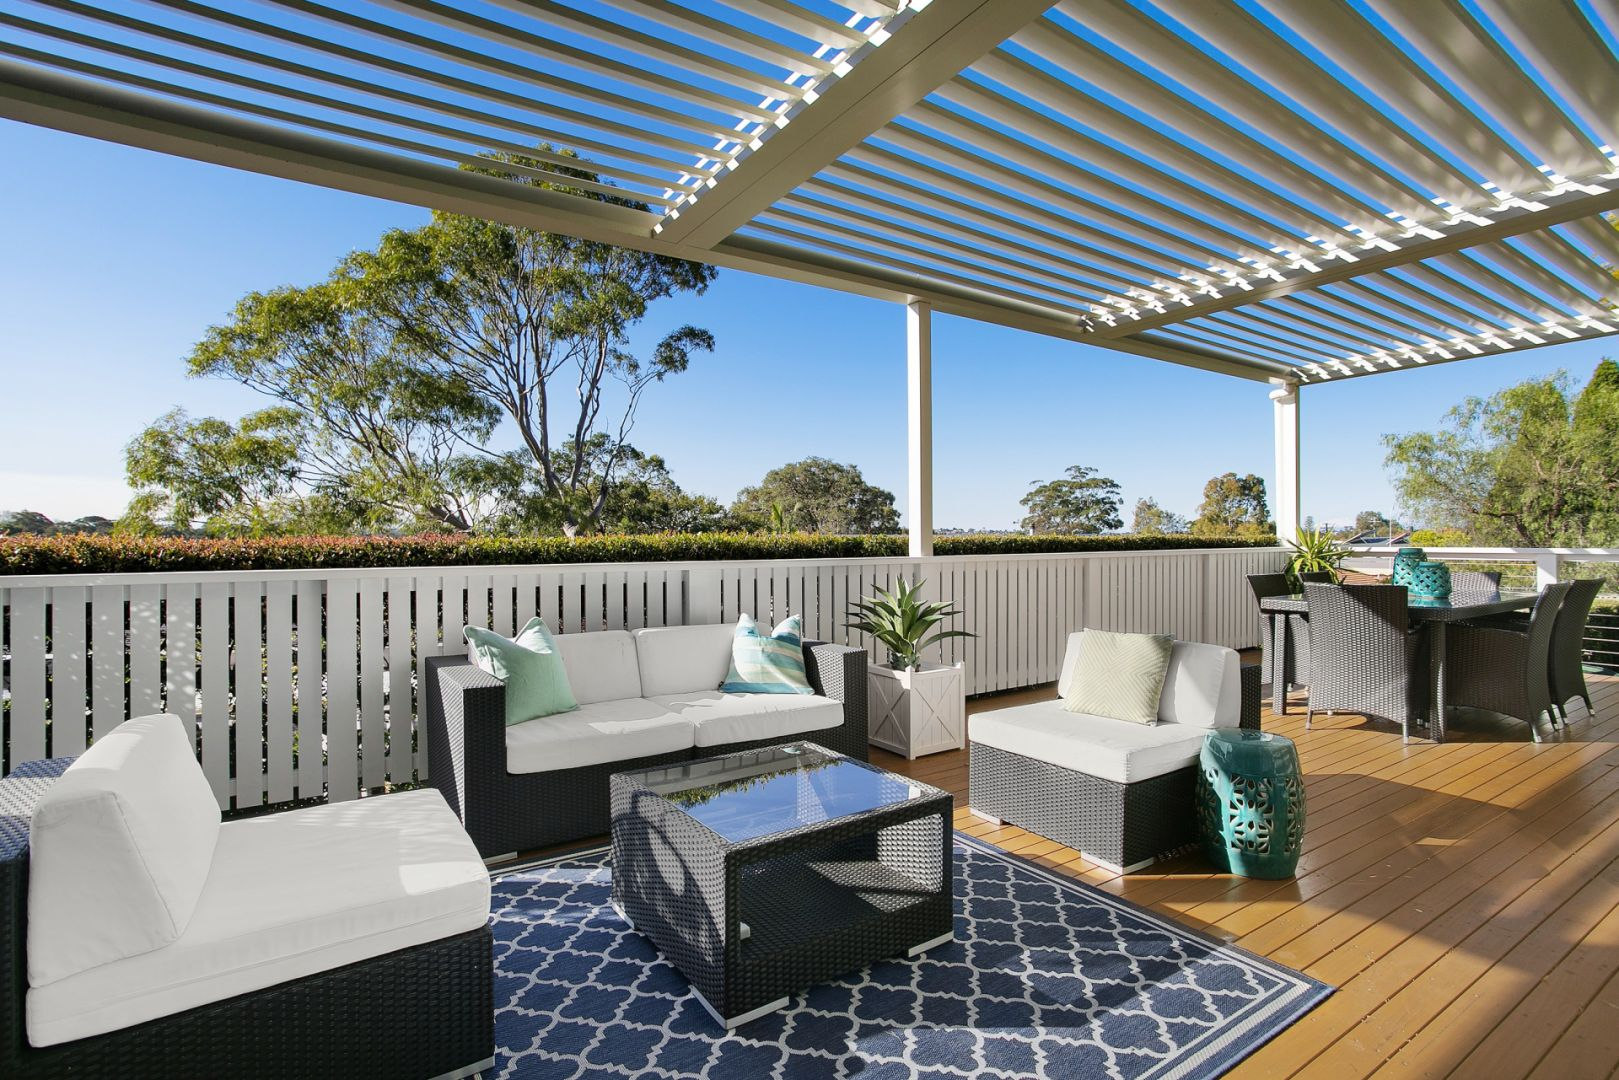 Outdoor Patio Deck with Sofa and Table